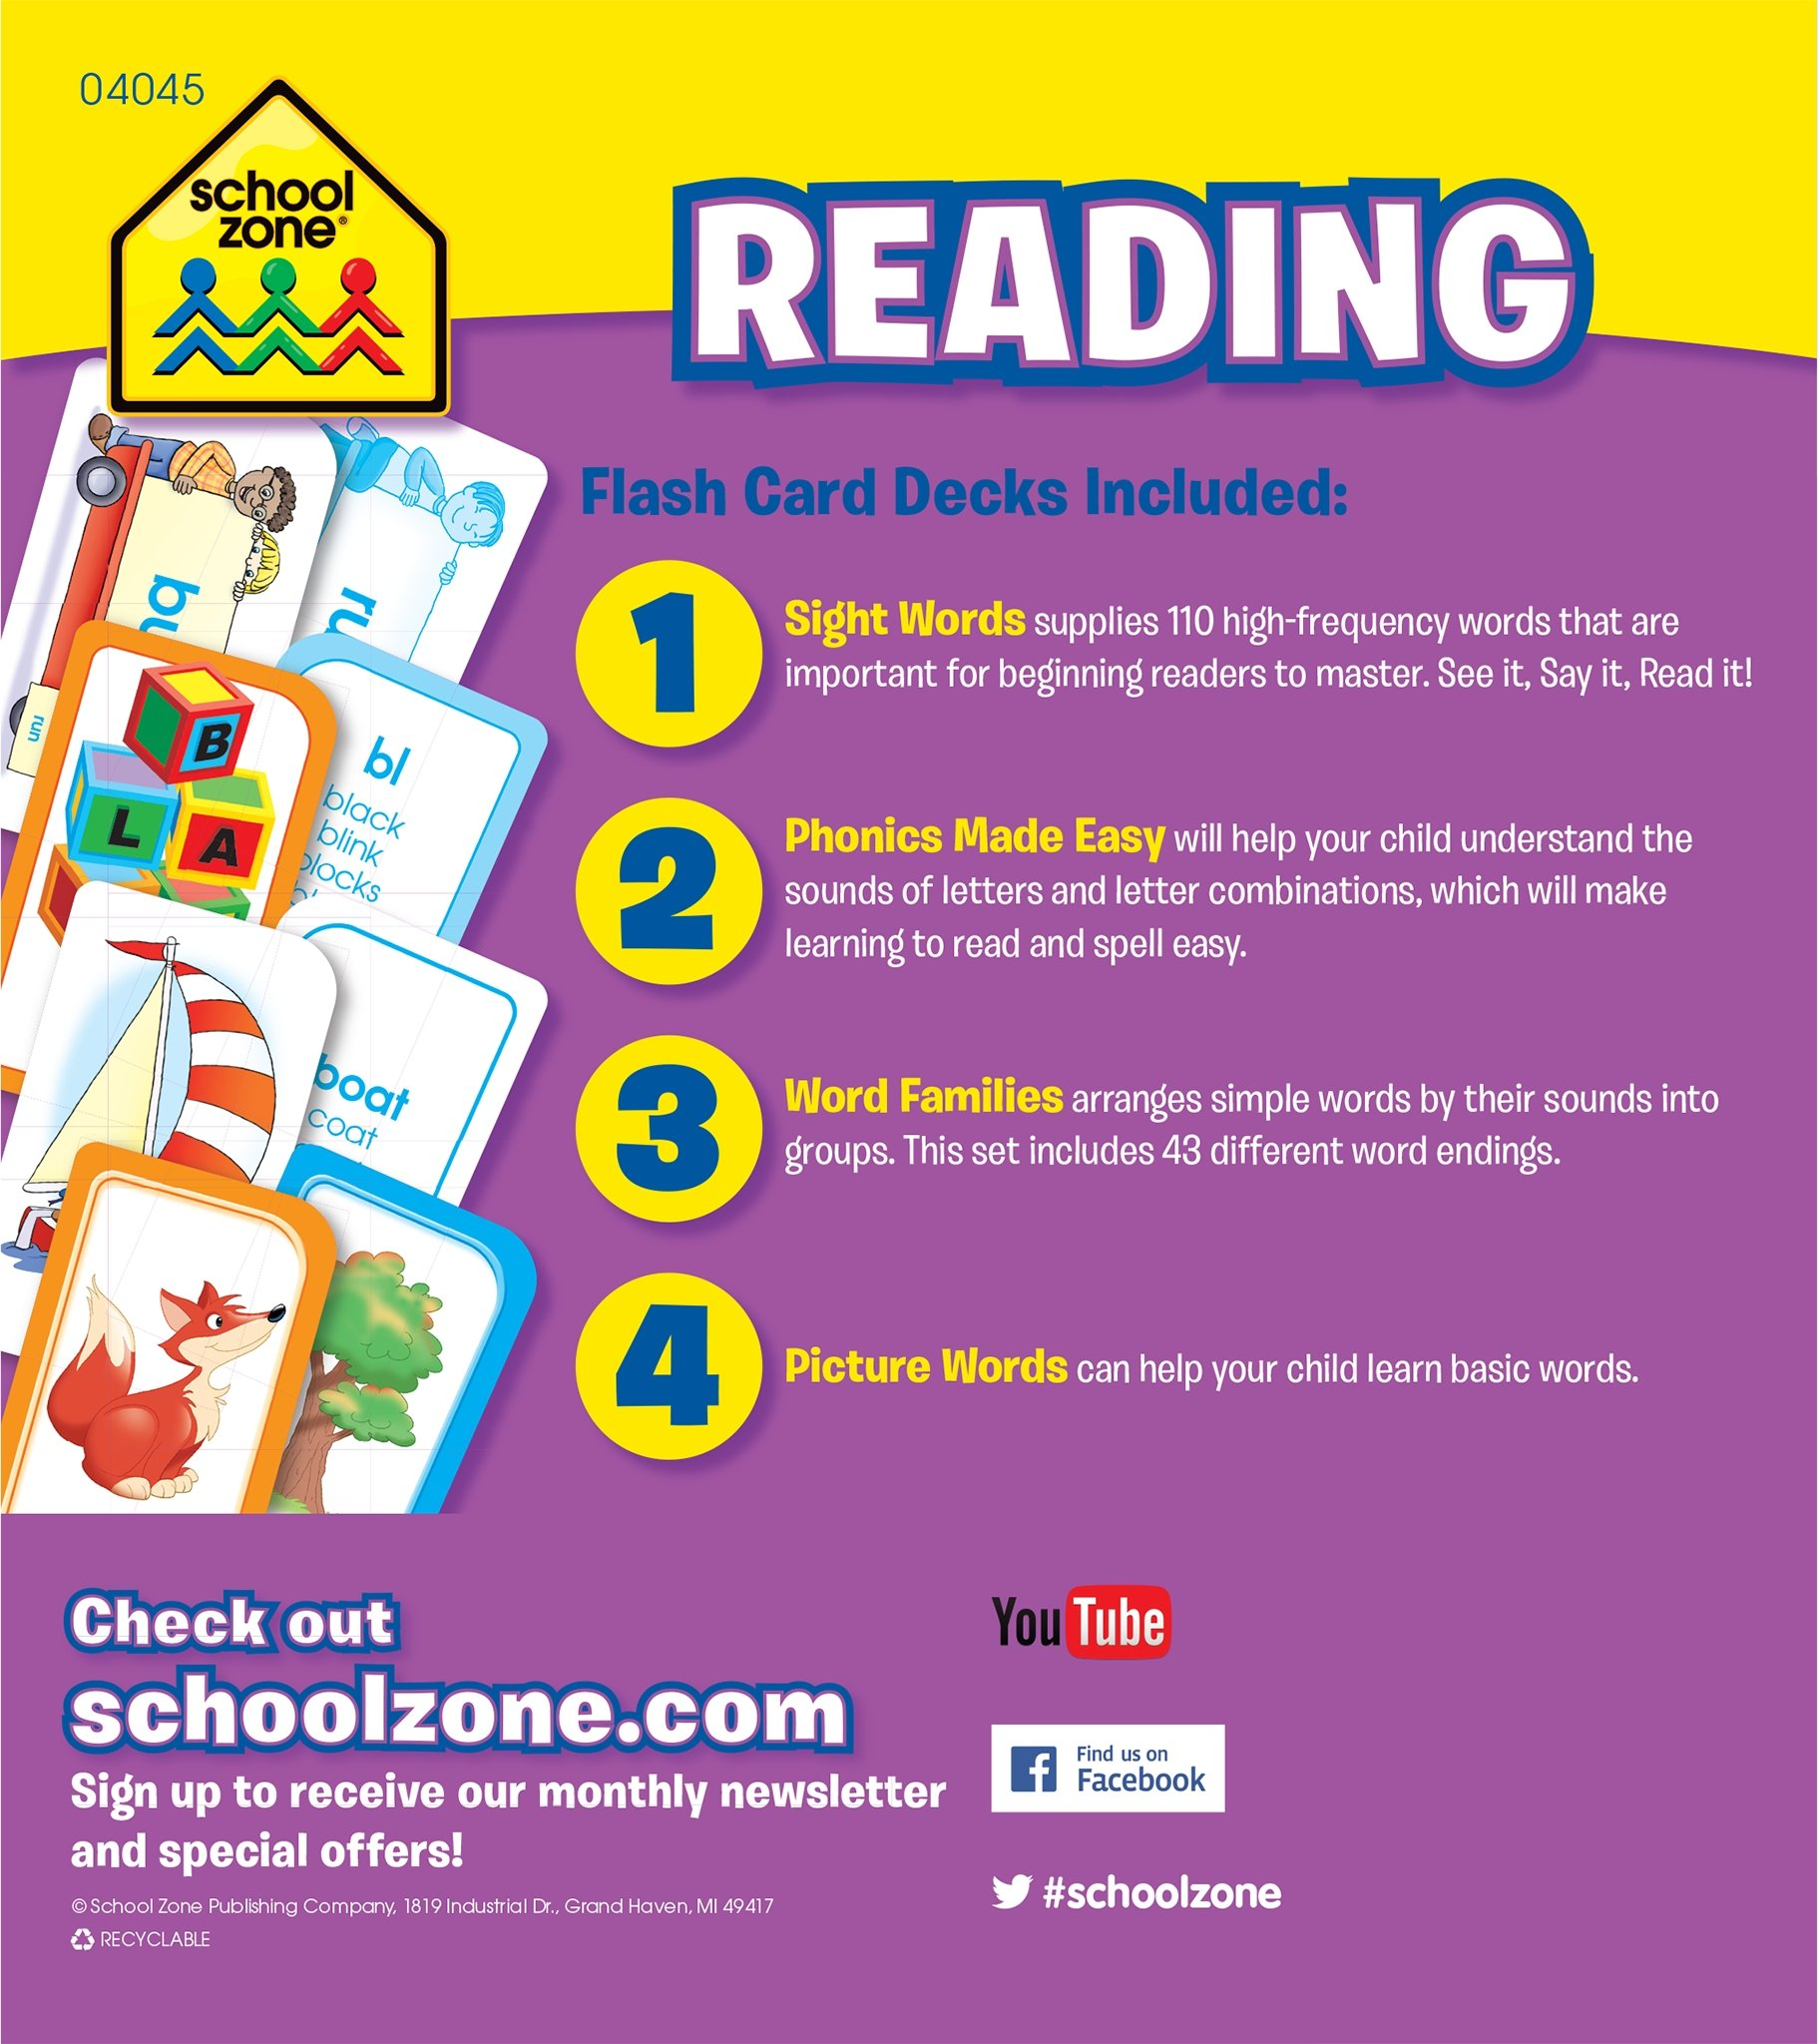 Worksheets Flash Card For Reading reading flash card 4 pack school zone staff 0076645040459 amazon com books